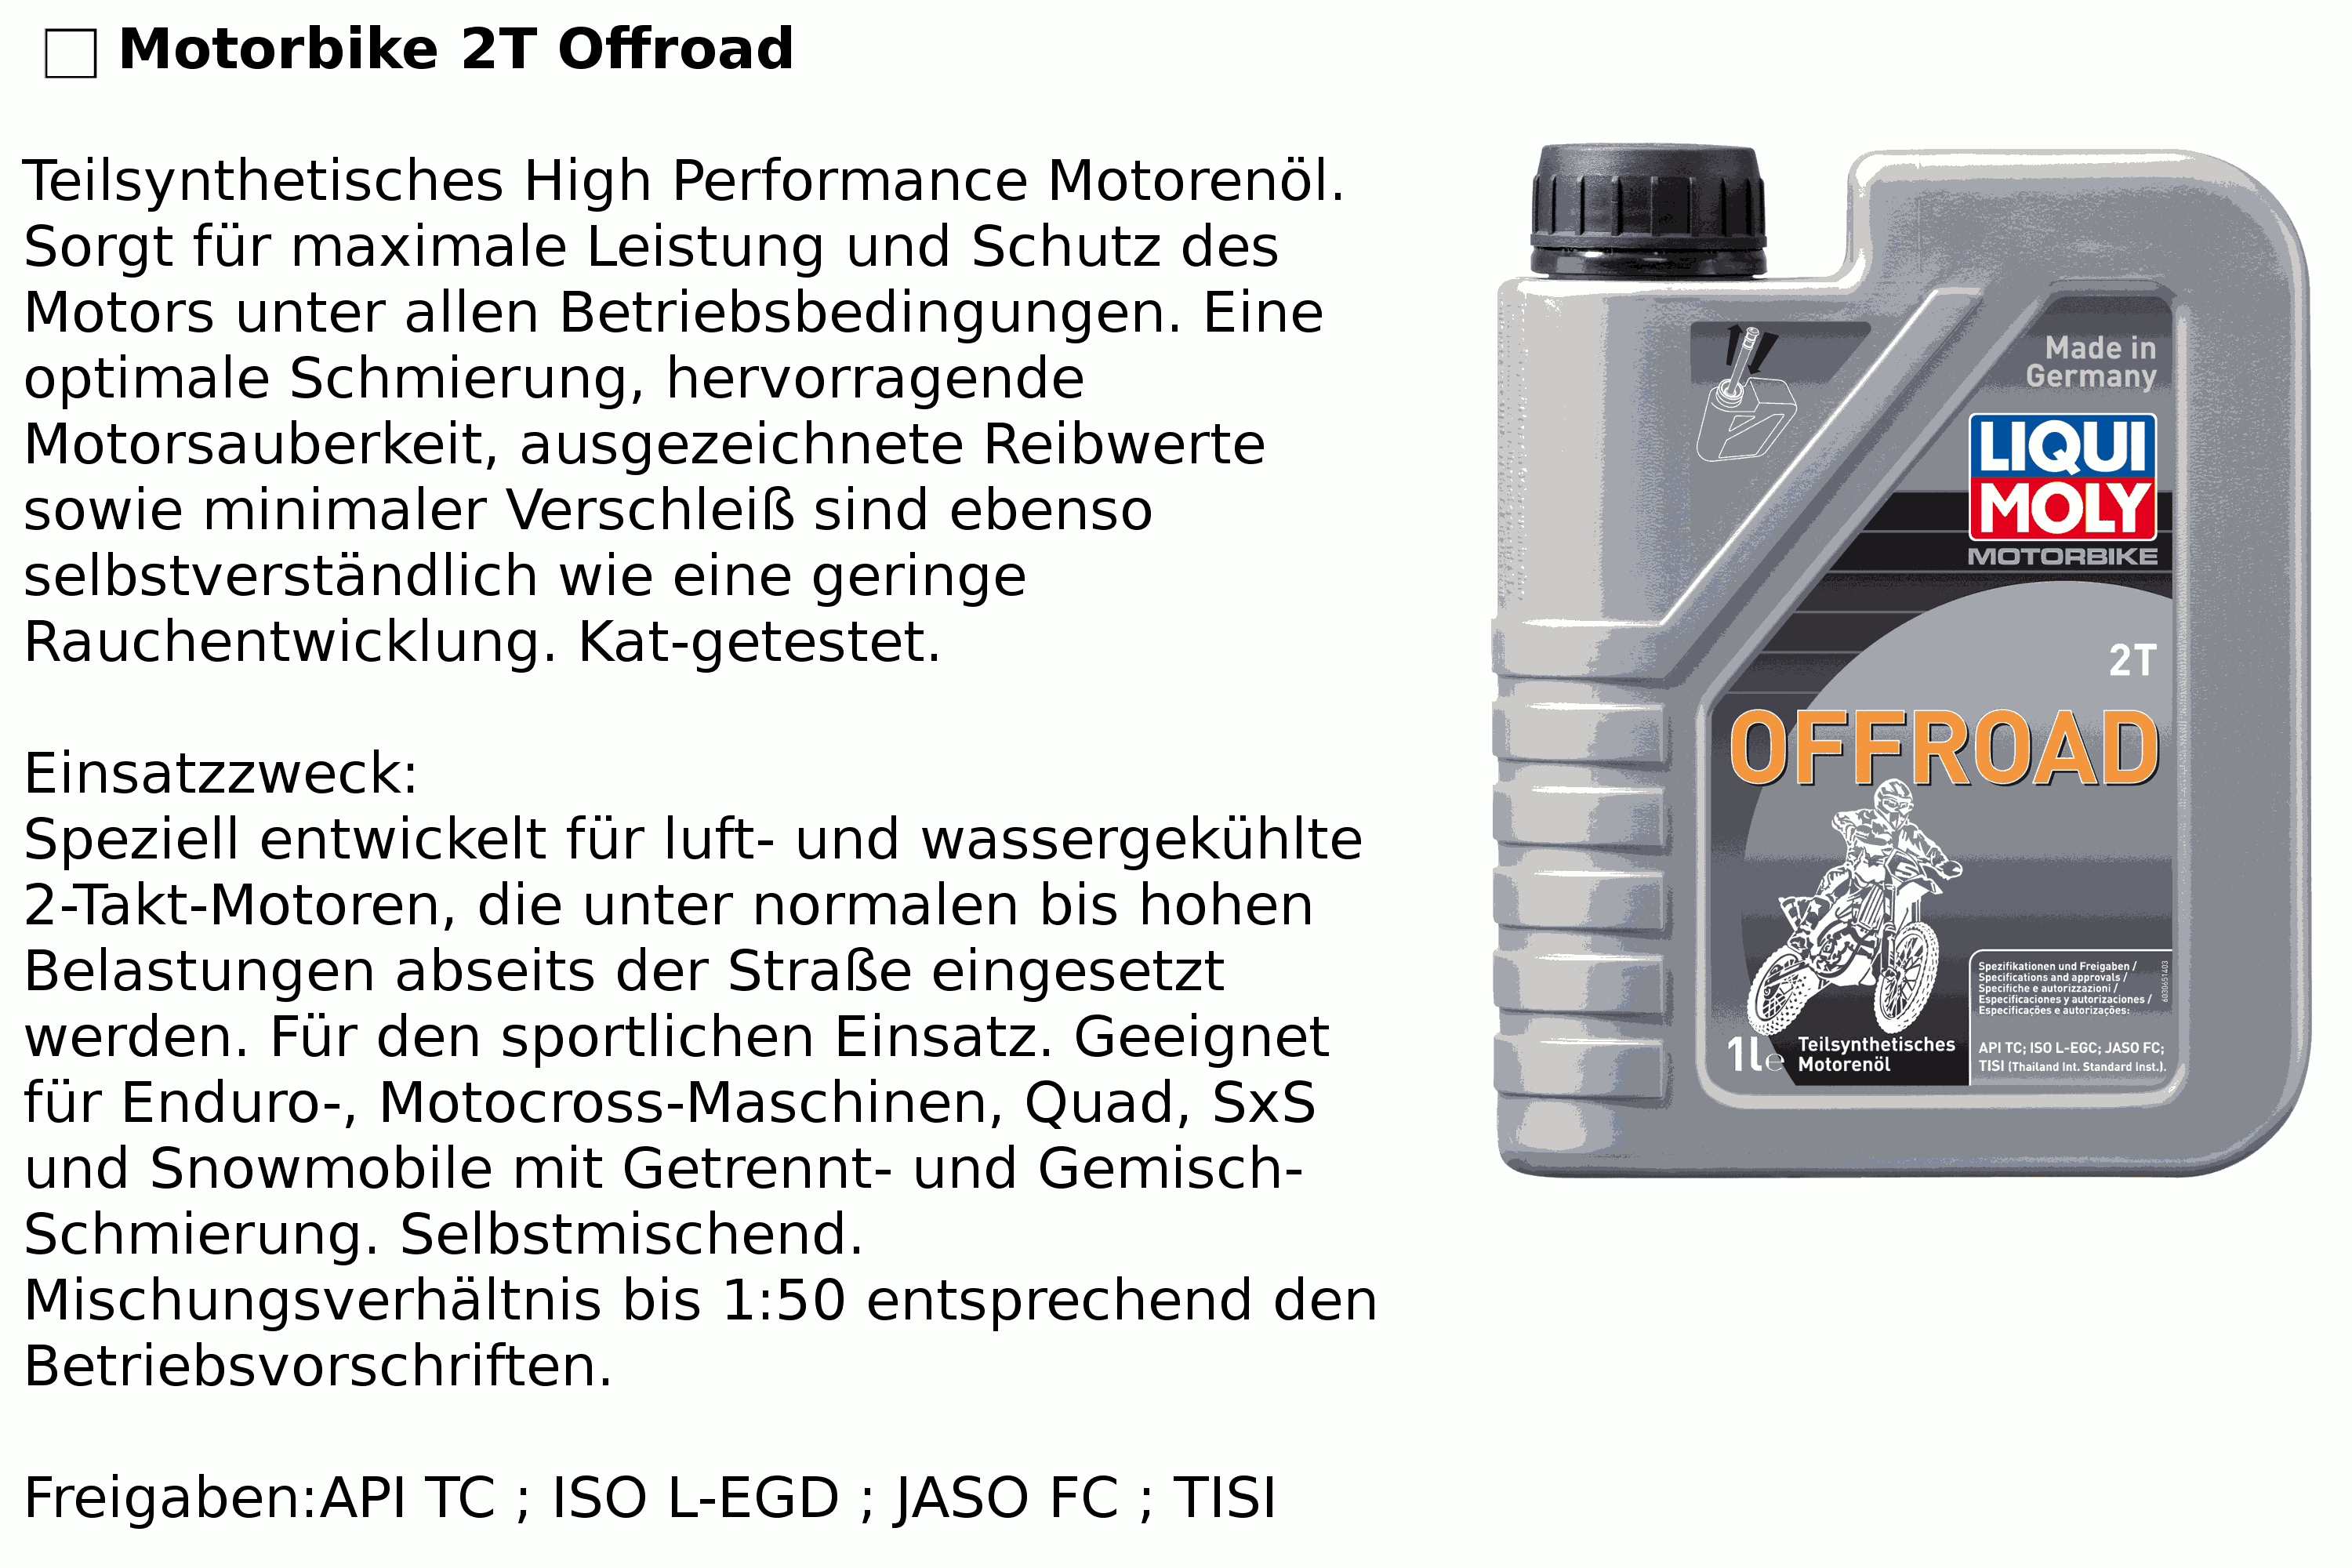 2T Offroad